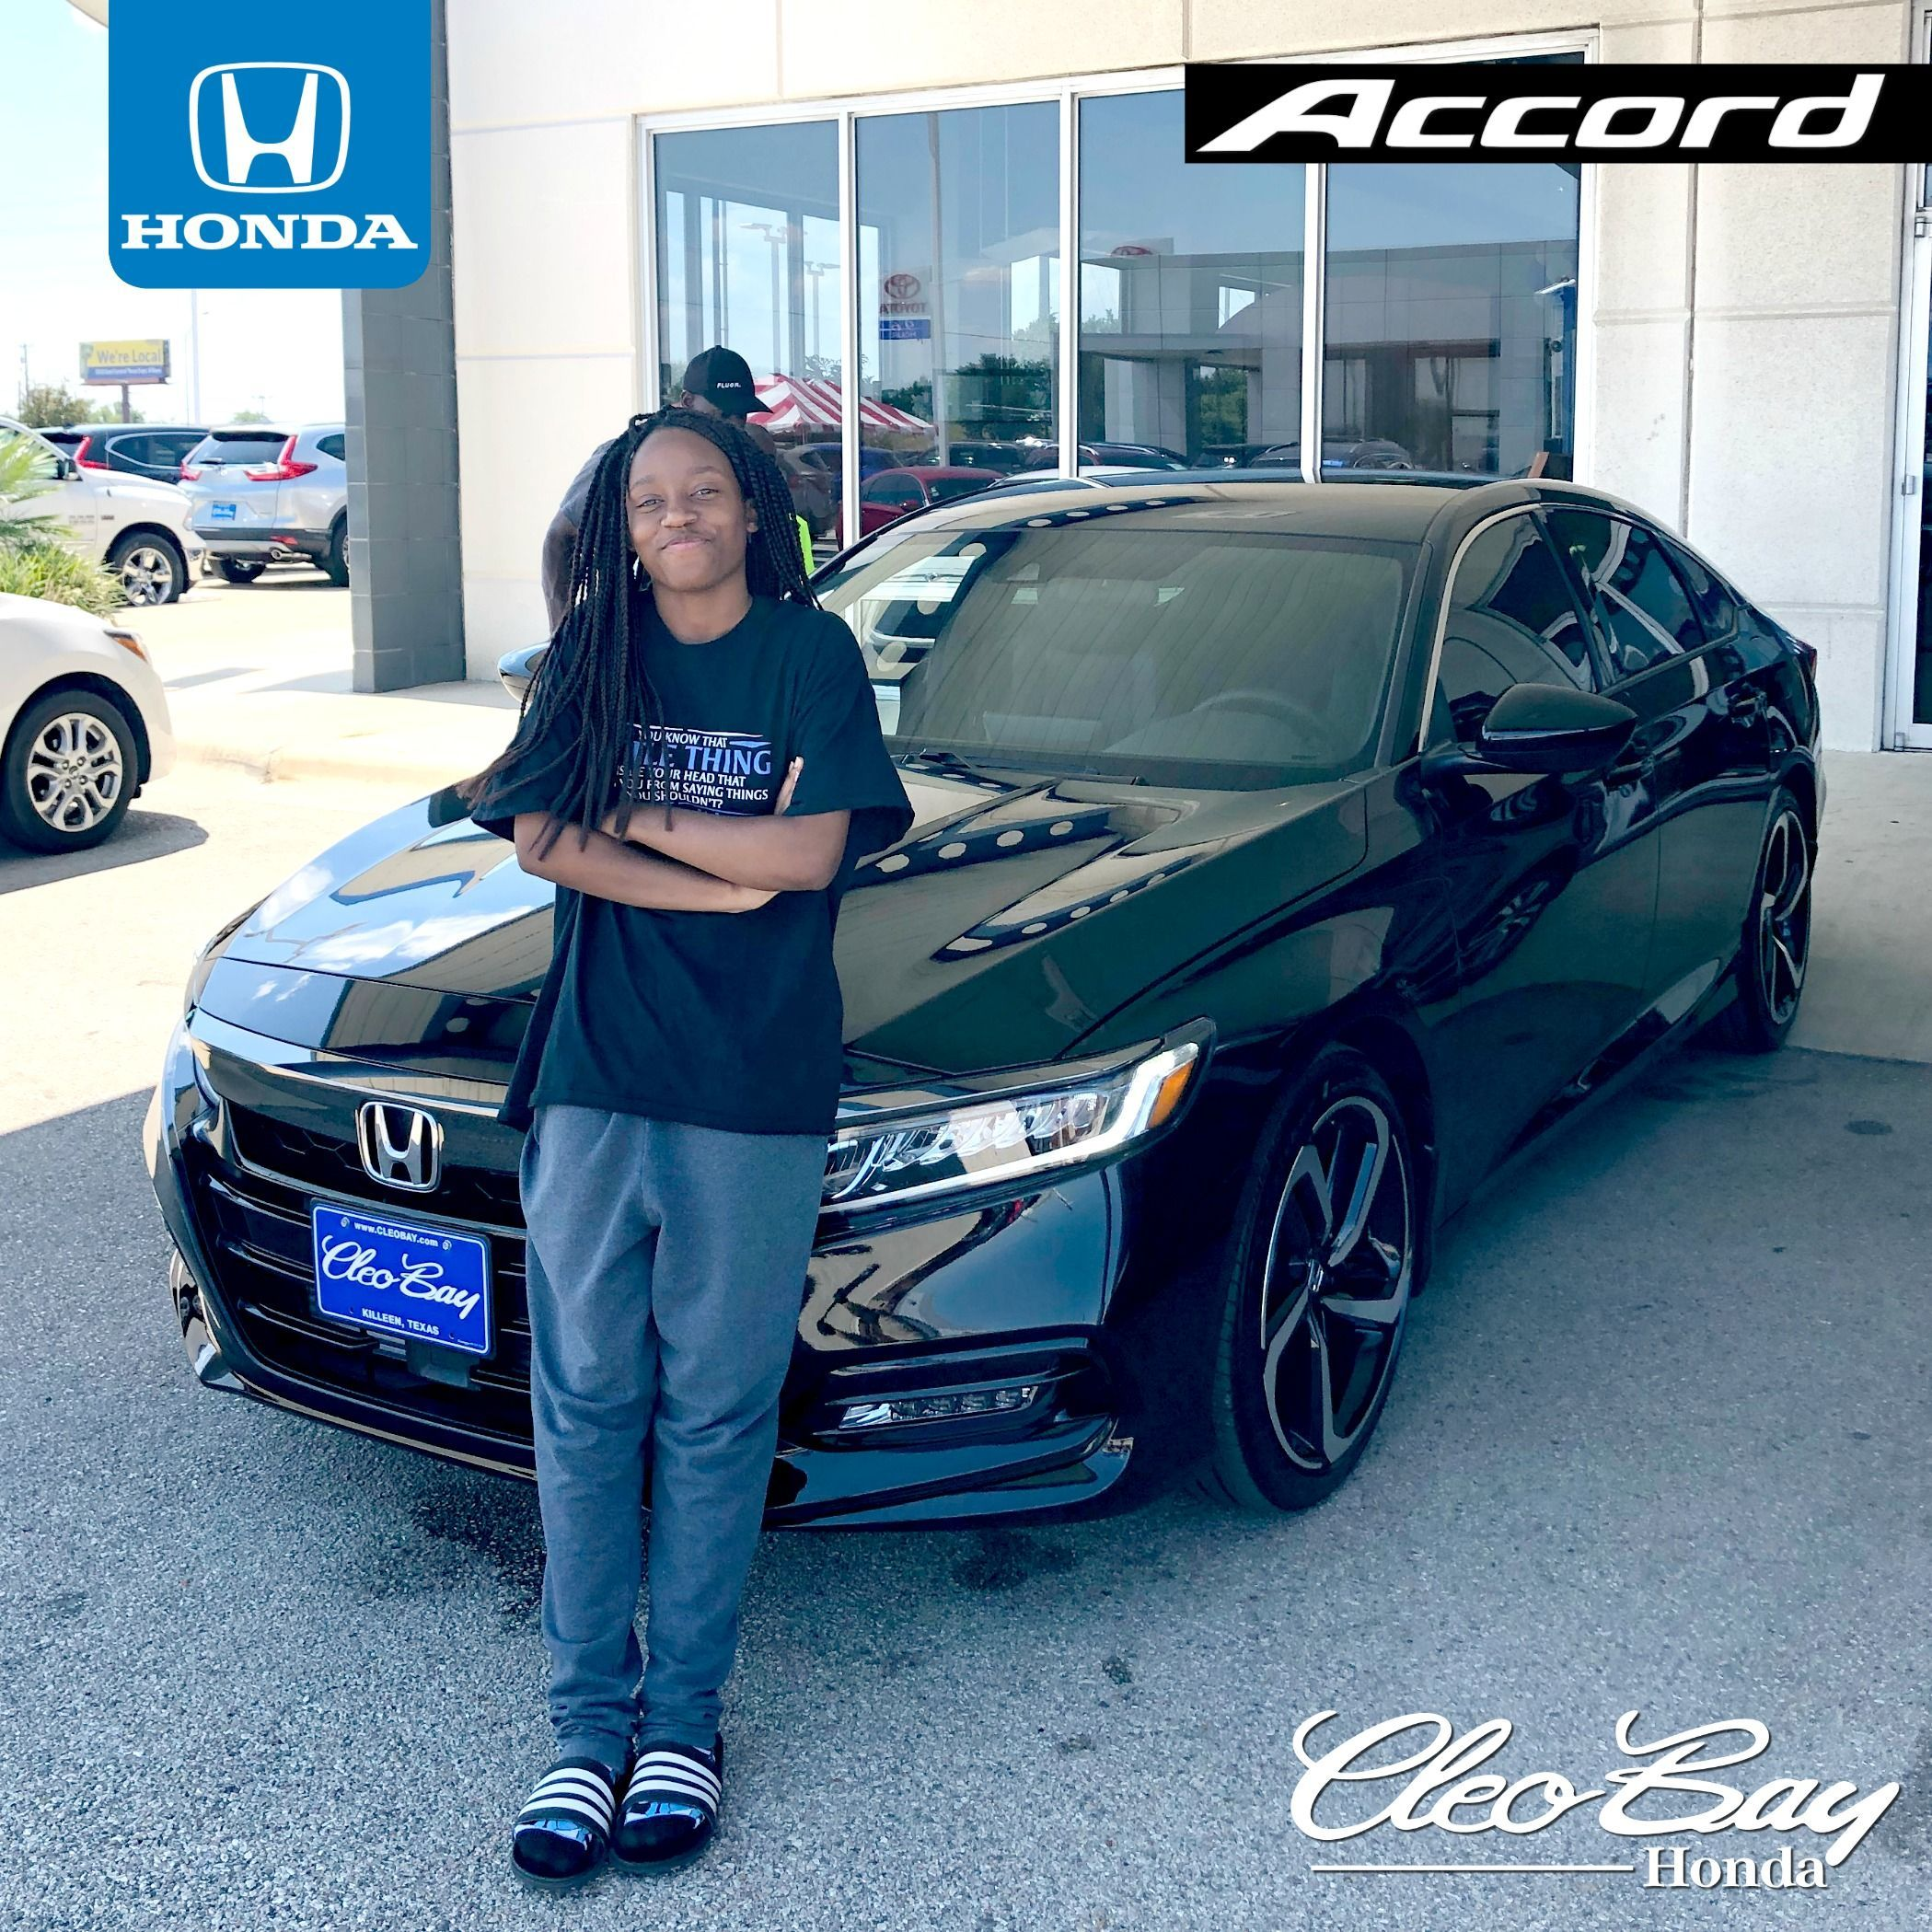 Congratulations Elexia on your recent purchase of a NEW